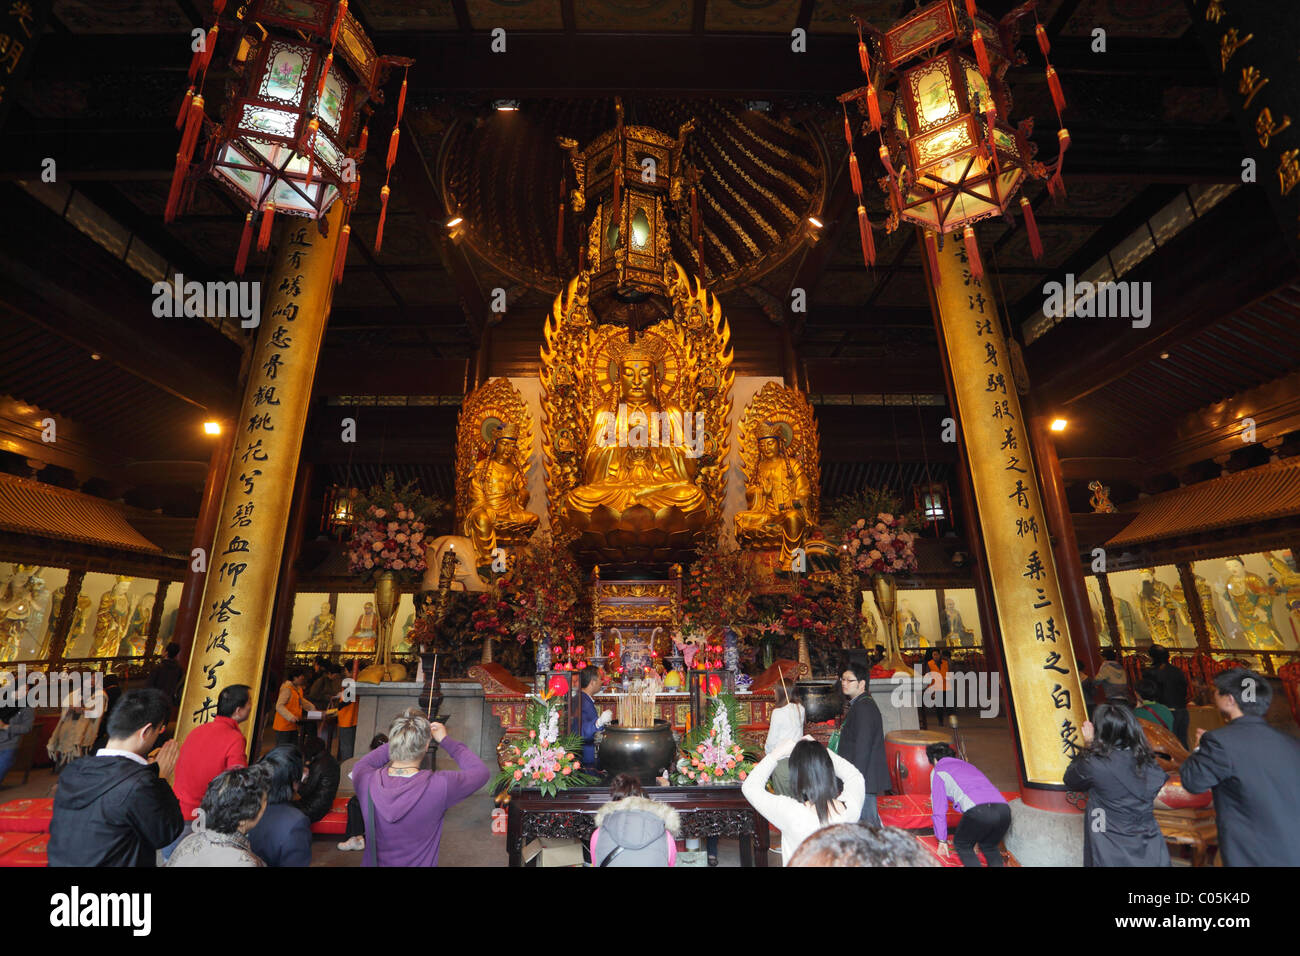 Betet an der Longhua-Tempel in Shanghai, China. Stockbild